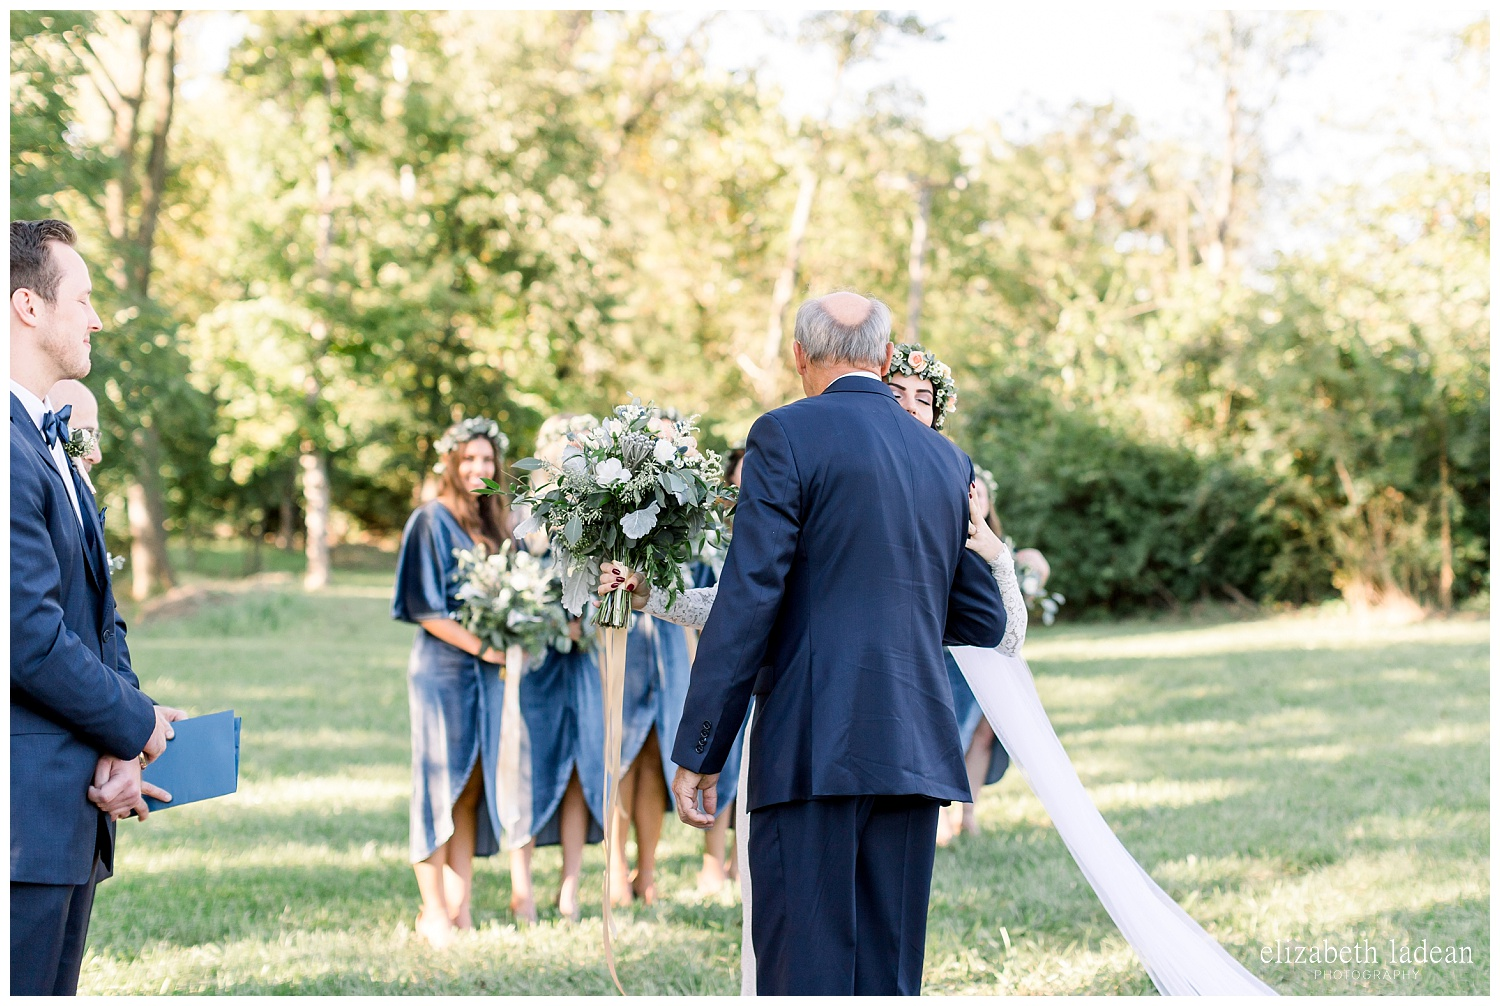 Willow-Creek-Blush-and-Blues-Outdoor-Wedding-Photography-S+Z2018-elizabeth-ladean-photography-photo_0568.jpg